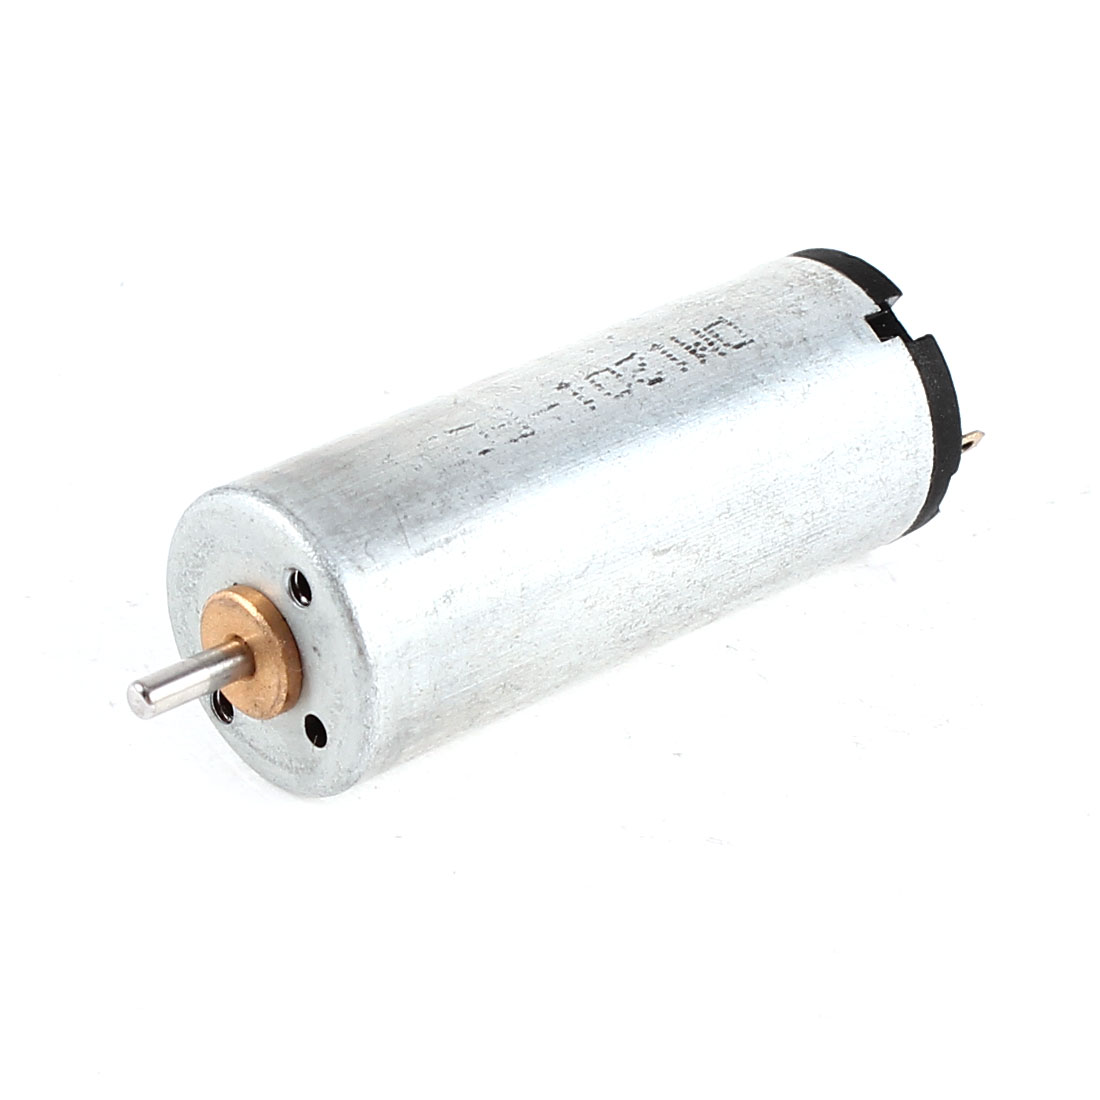 Electric Mini Motor DC 3-6V 20000RPM 12x20mm for RC Model Toys DIY